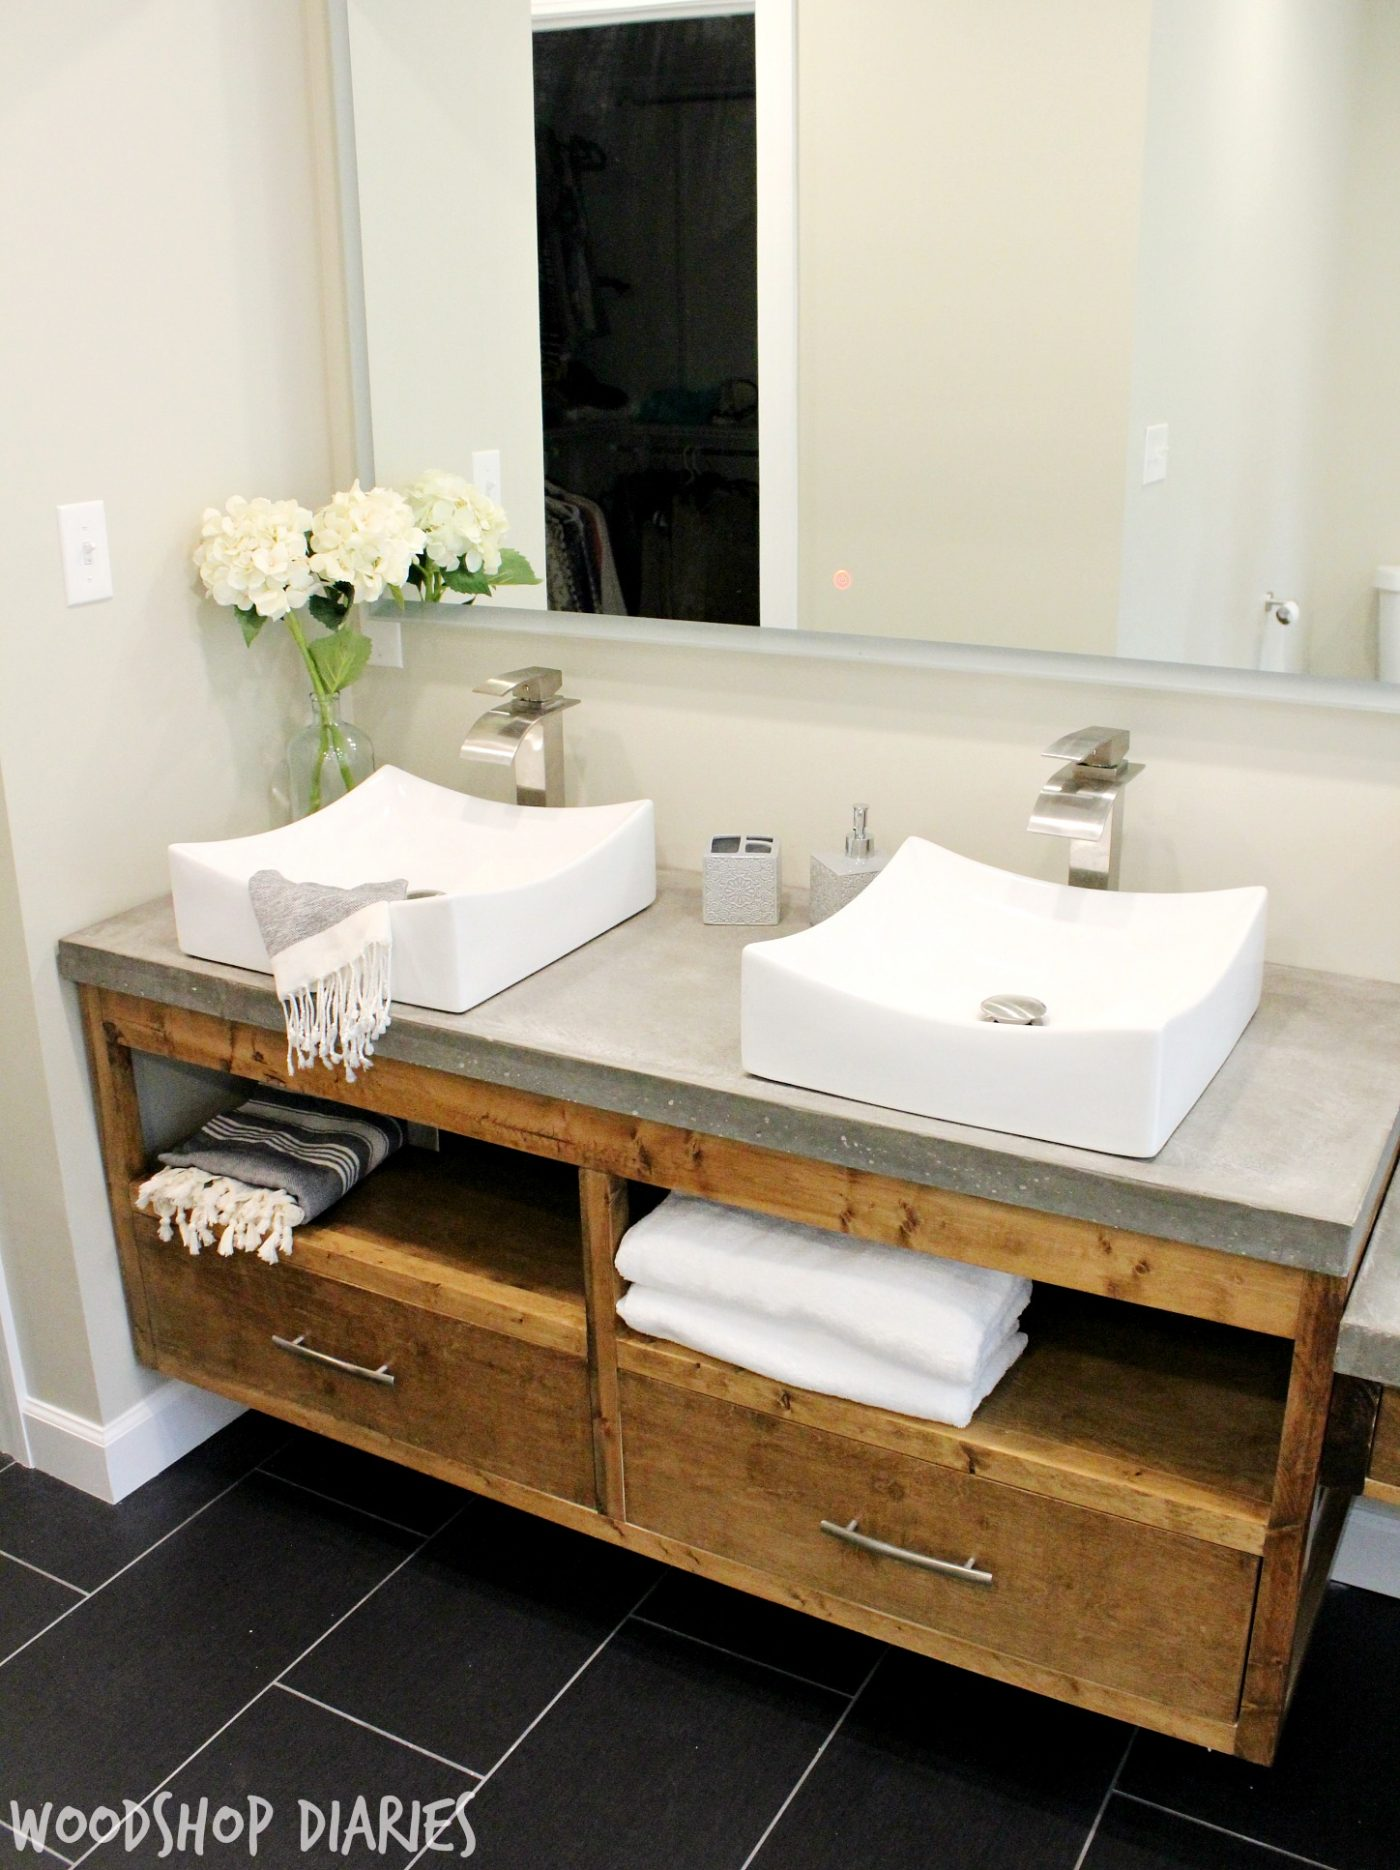 Modern bathroom with diy floating vanity and concrete counter tops vessel sinks and silver